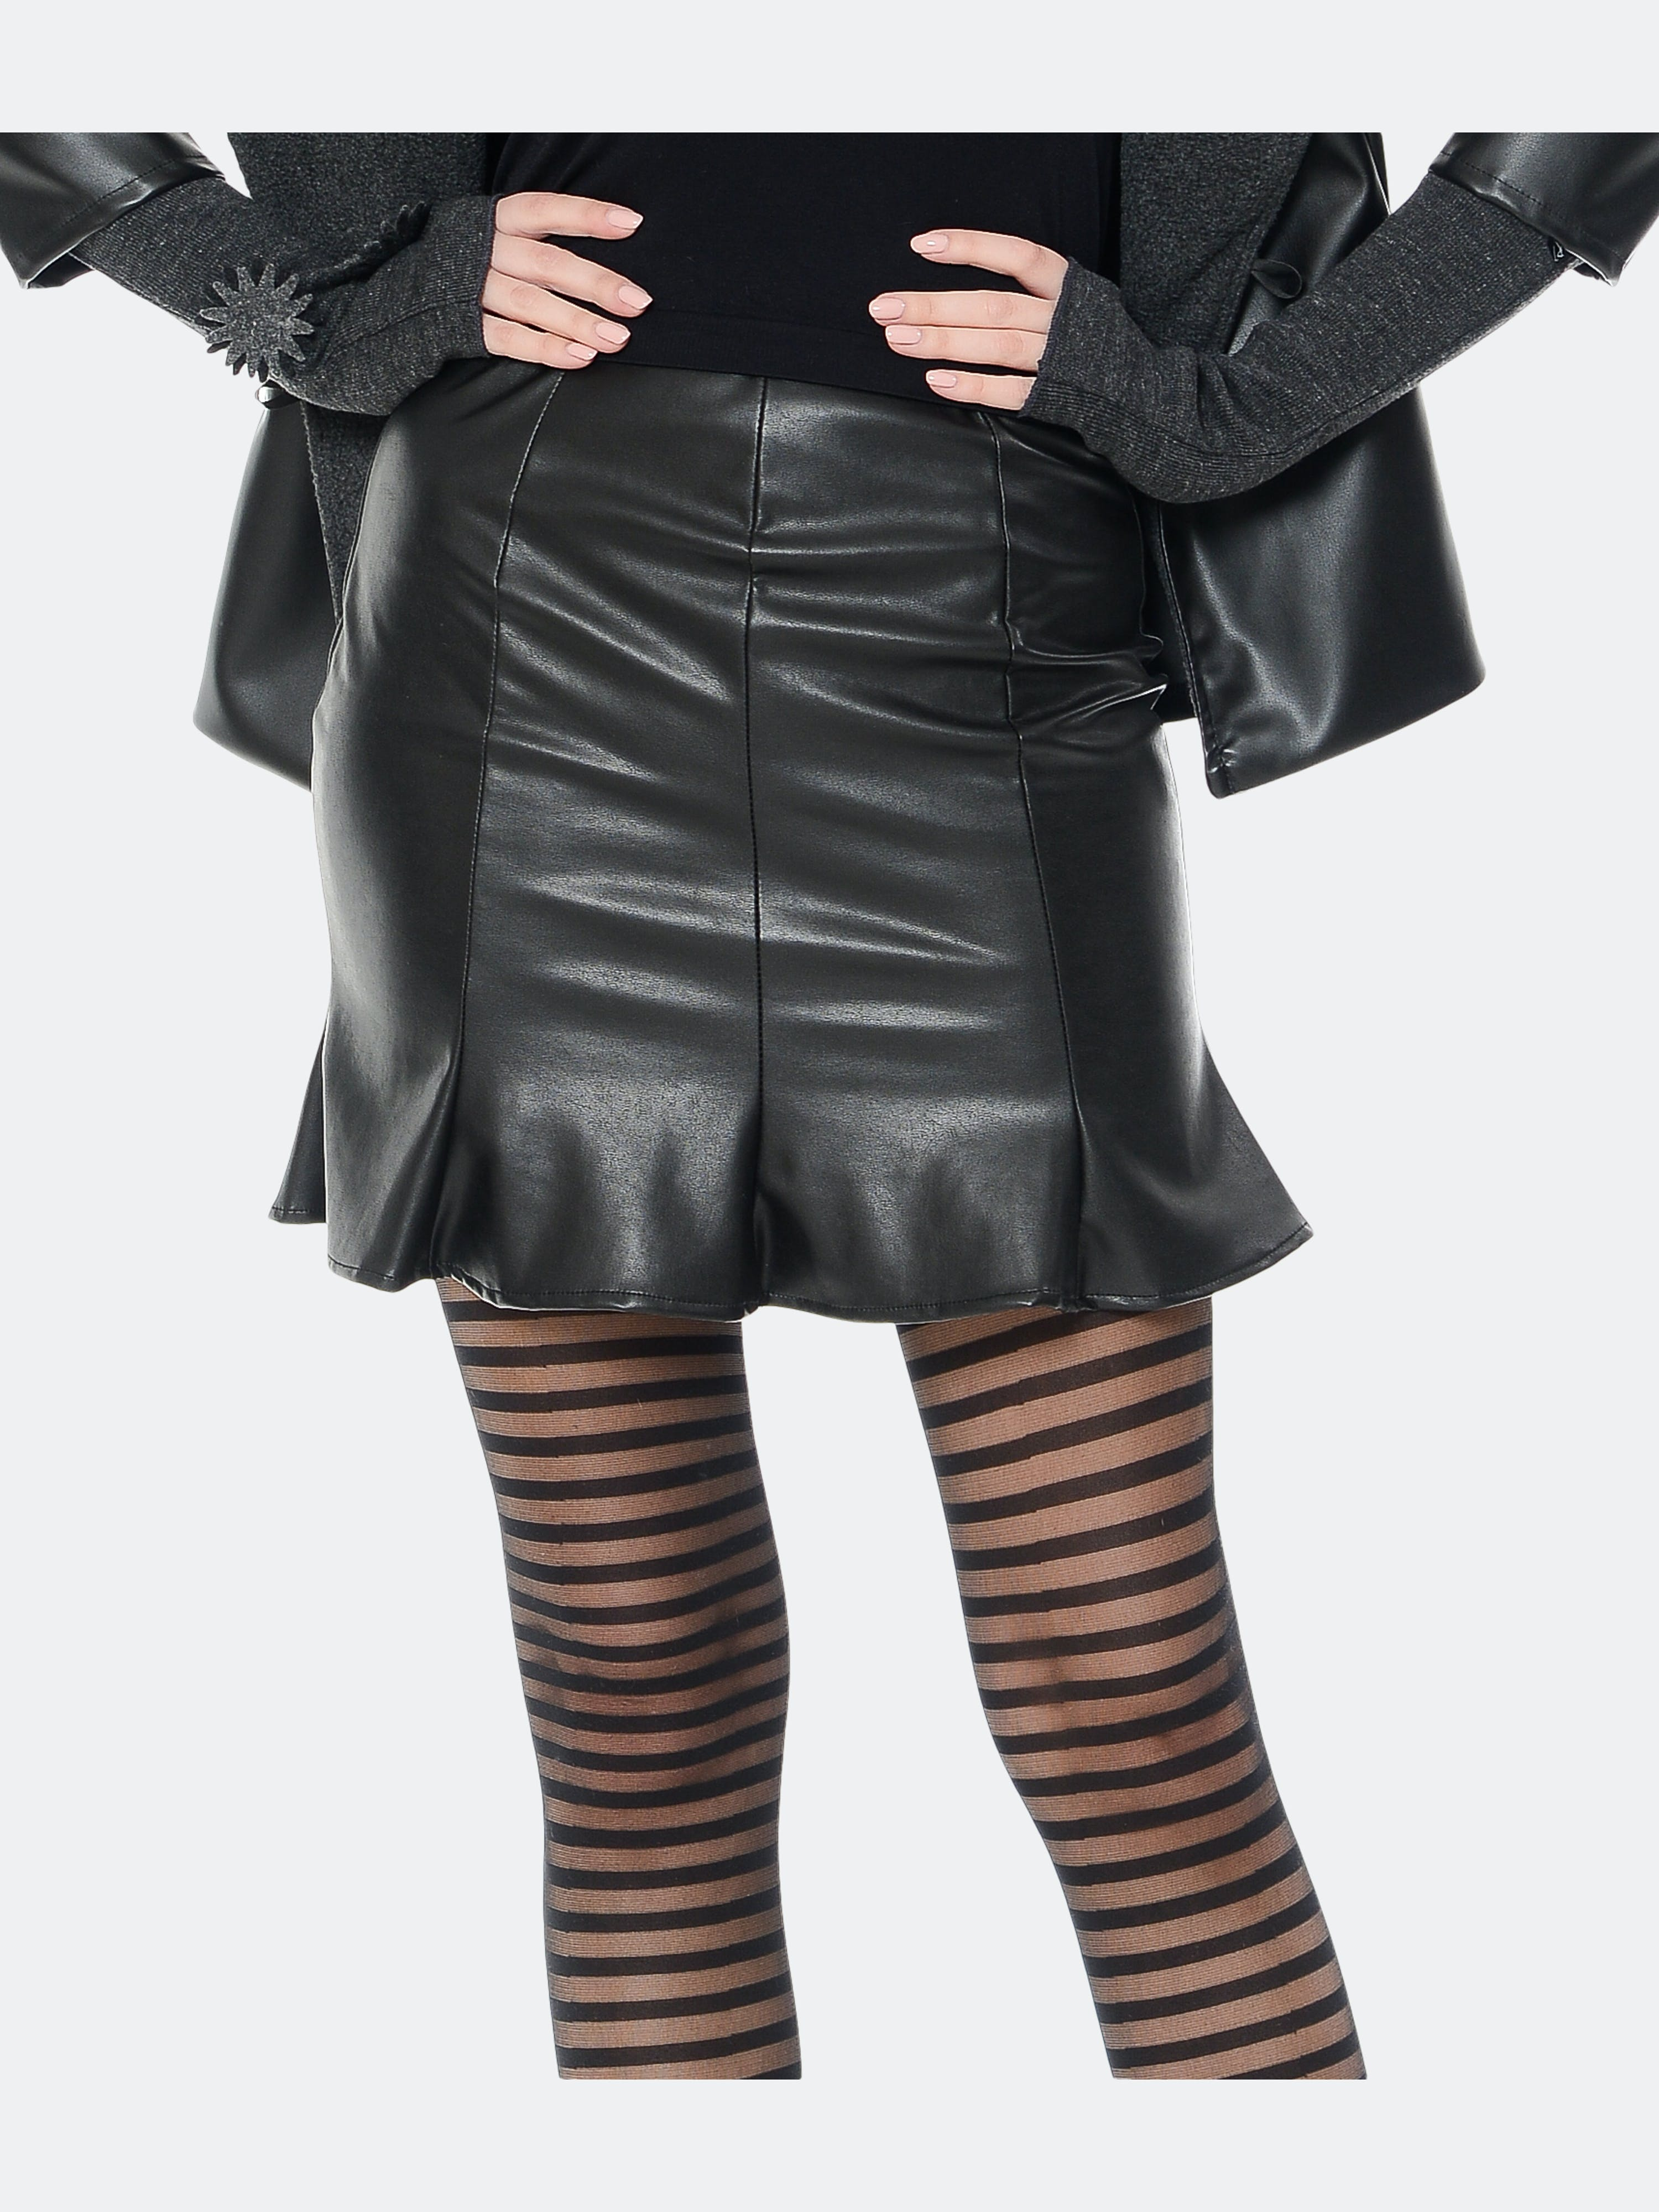 Rt Designs Faux Leather Mini Skirt In Black